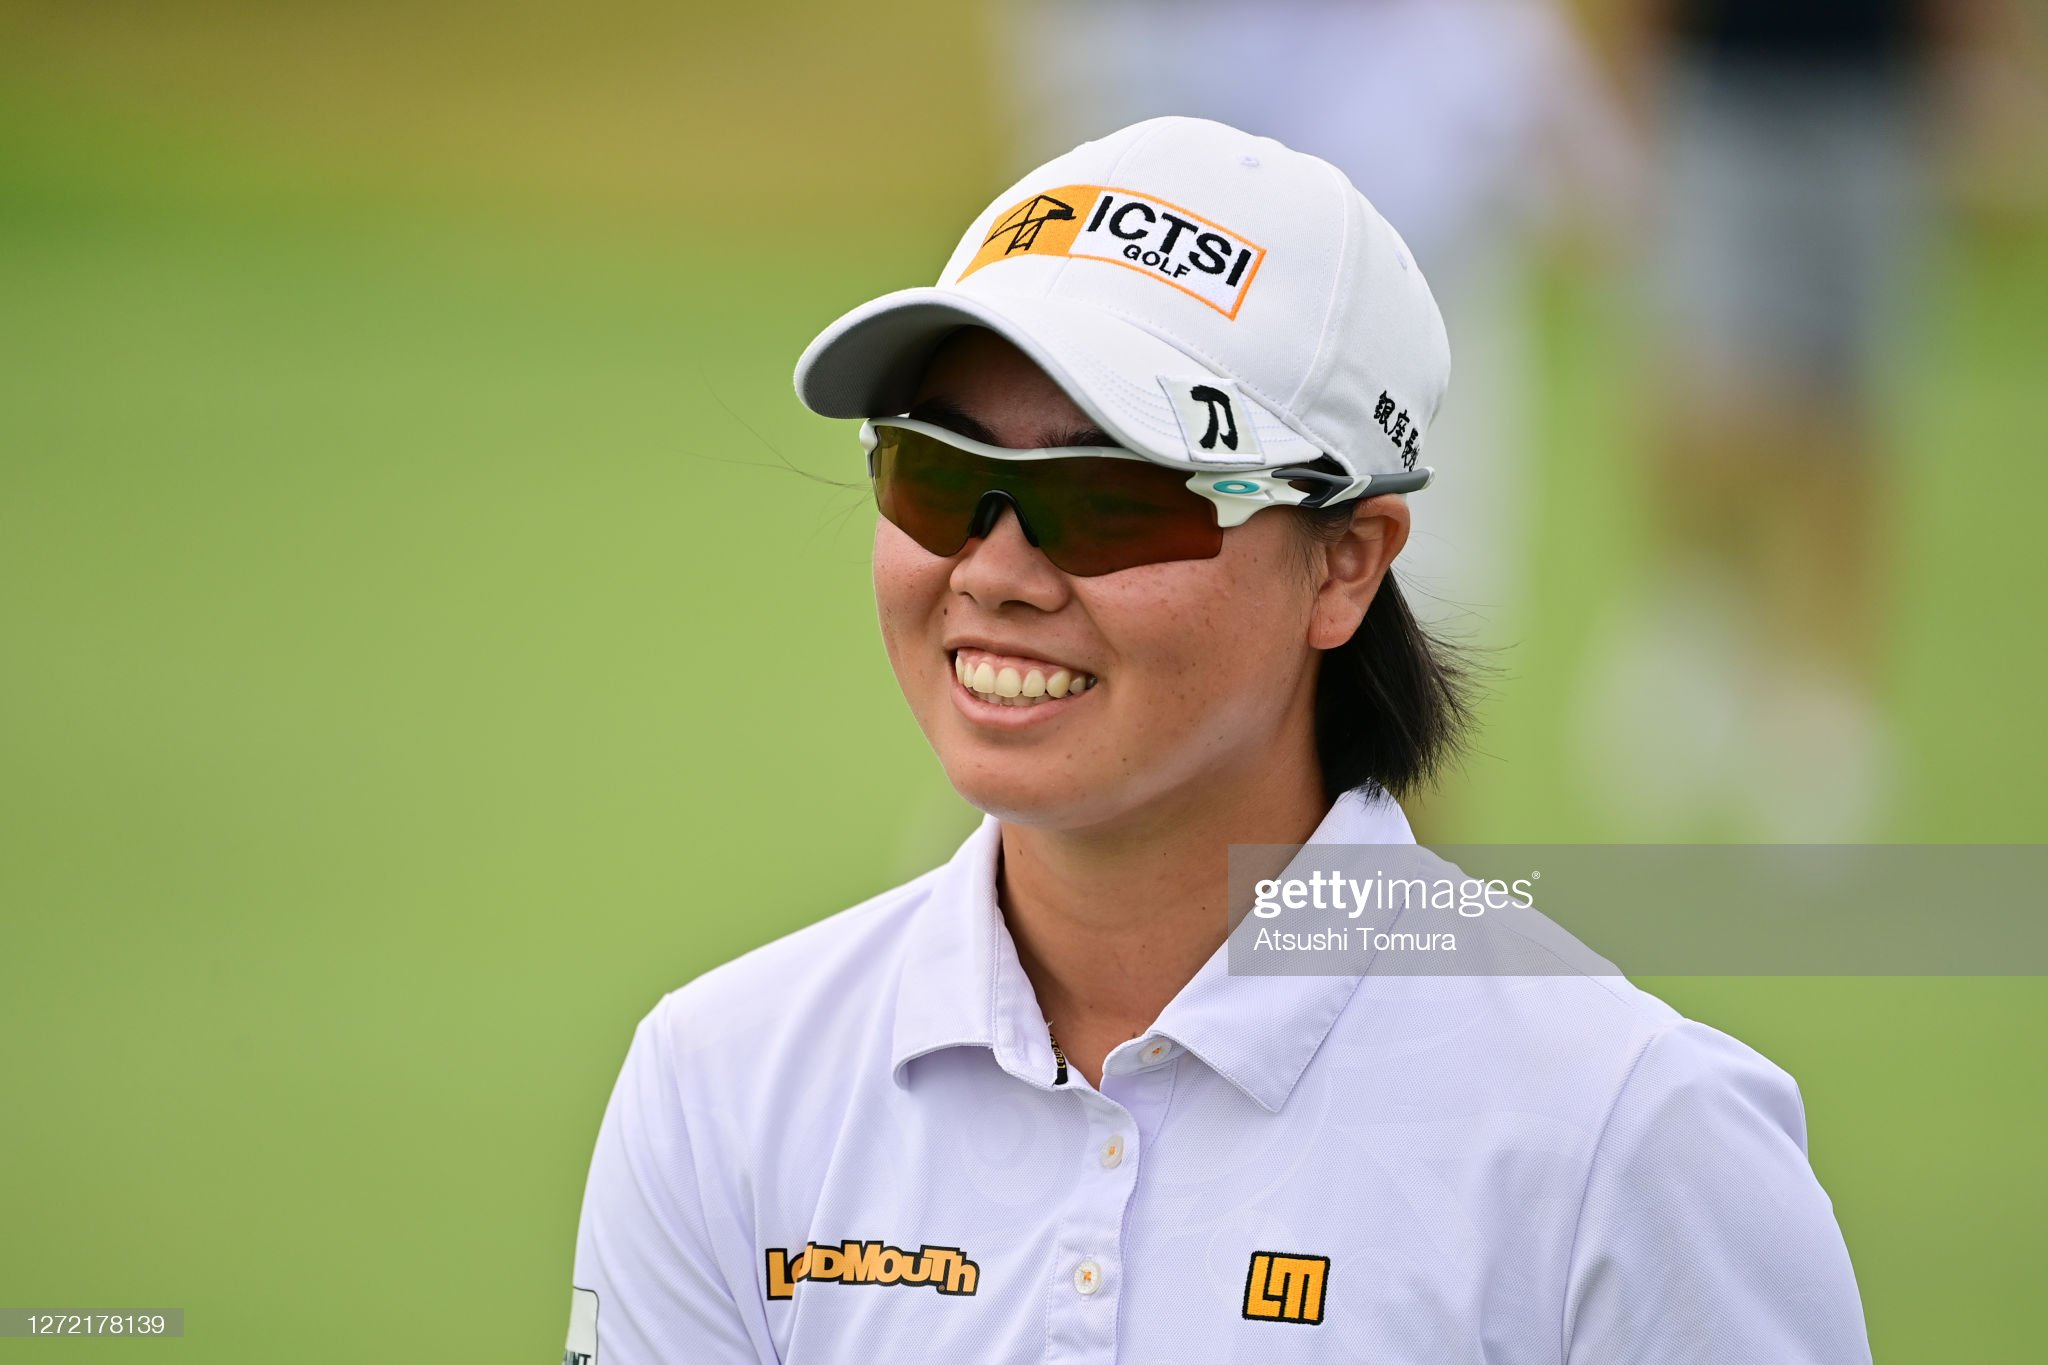 https://media.gettyimages.com/photos/yuka-saso-of-japan-smiles-on-the-1st-green-during-the-final-round-of-picture-id1272178139?s=2048x2048